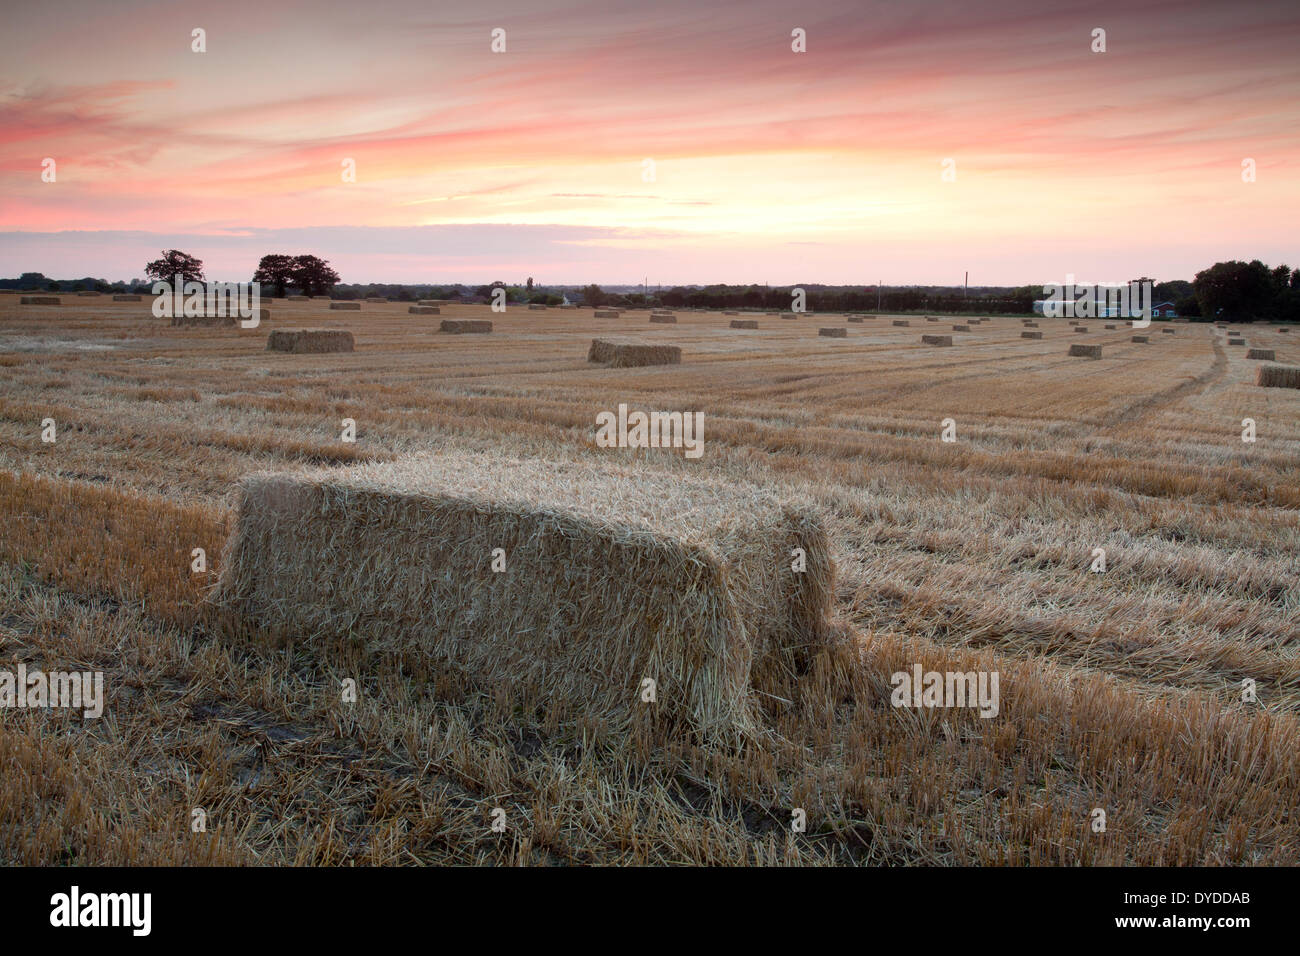 Sunset over farmland in the village of Martham. Stock Photo